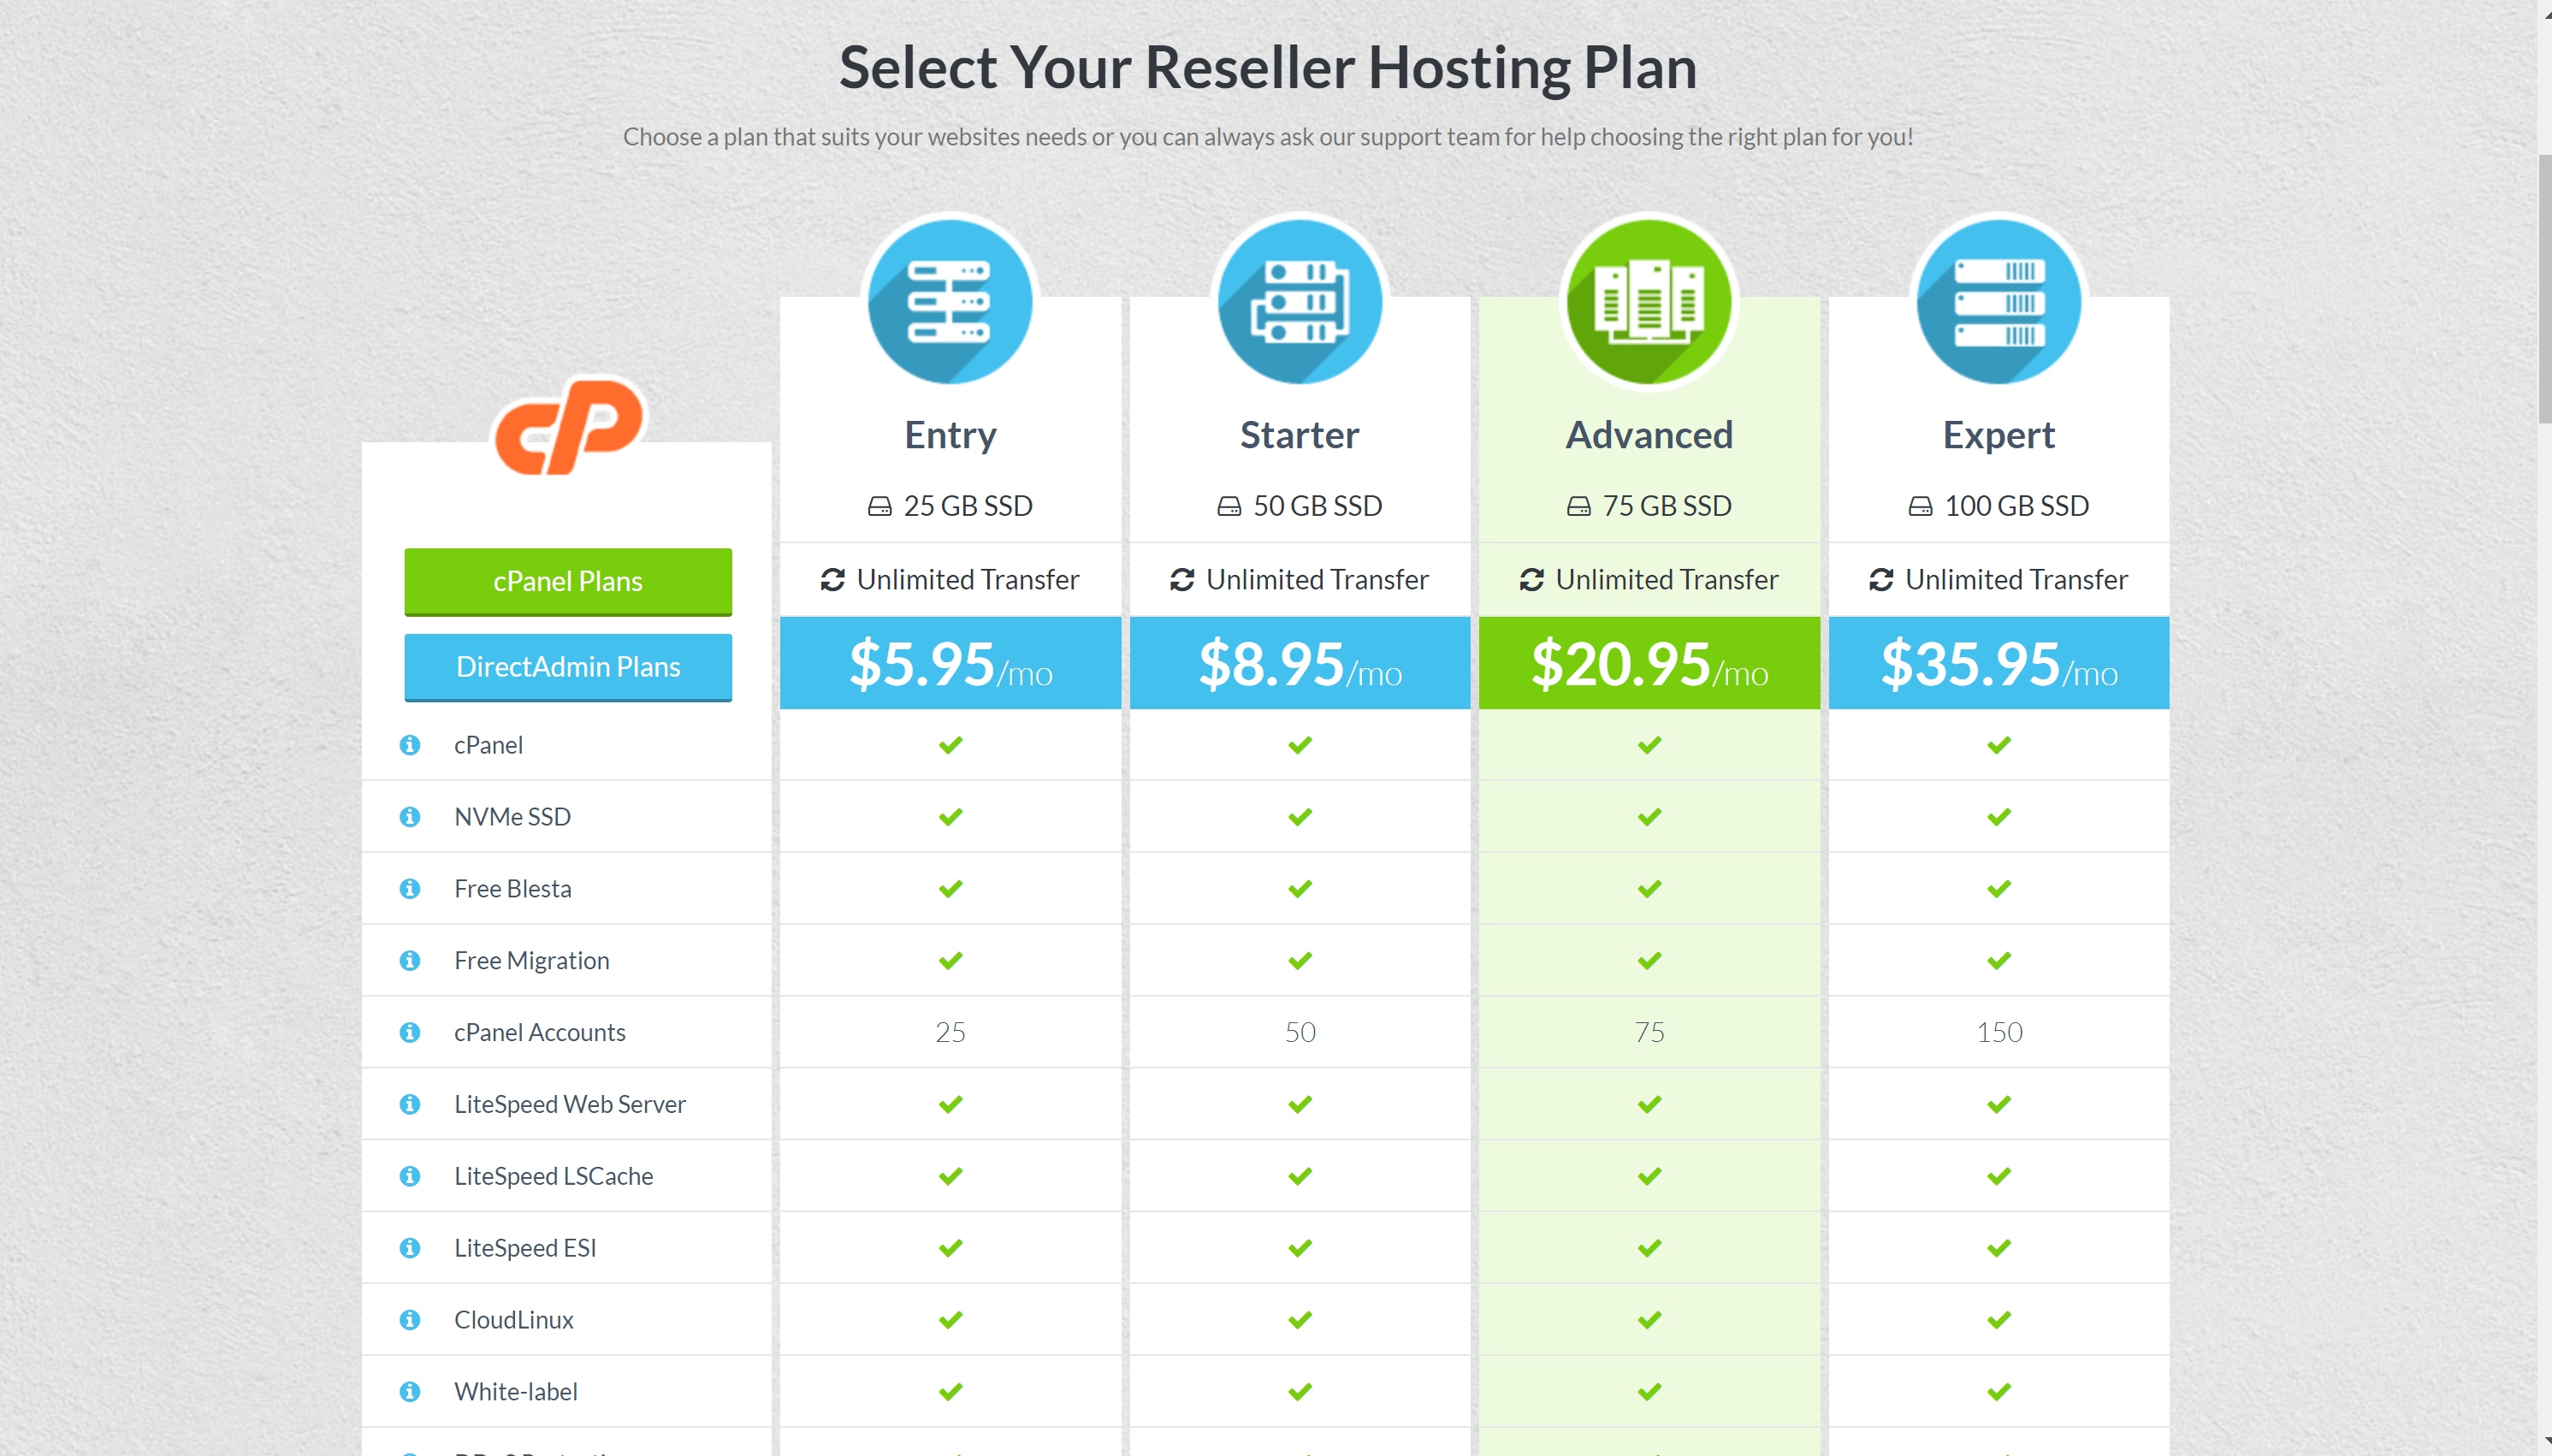 Hostmantis reseller hosting features and plans